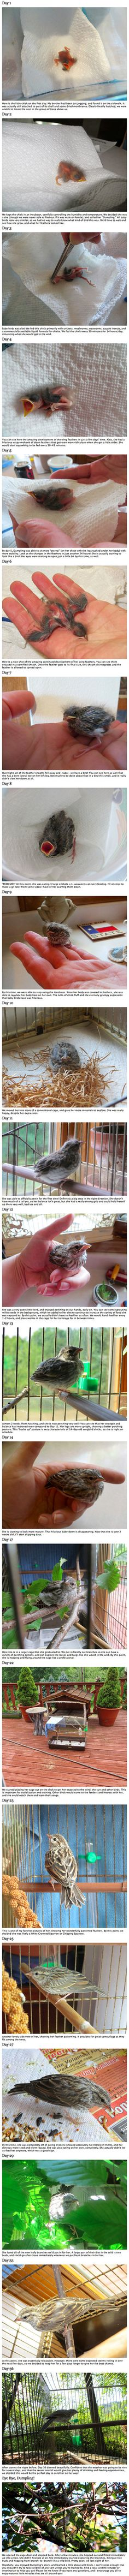 A veterinarian was jogging one day when he stumbled upon this tiny freshly hatched songbird that had fallen out of its nest. Unable to locate the nest so he could return the baby bird to it, he decided to take it home and hand raise it himself. Here is the amazingly beautiful story... Have a Little Faith in Me DHANPAT RAI SHRIVASTAVA - (31 JULY 1880 - 8 OCTOBER 1936), BETTER KNOWN BY HIS PEN NAME MUNSHI PREMCHAND WAS AN INDIAN WRITER FAMOUS FOR HIS MODERN HINDUSTANI LITERATURE. HE IS ONE OF THE MOST CELEBRATED WRITERS OF THE INDIAN SUBCONTINENT, AND IS REGARDED AS ONE OF THE FOREMOST HINDI WRITERS OF THE EARLY TWENTIETH CENTURY. HIS NOVELS INCLUDE GODAAN, KARMABHOOMI, GABAN, MANSAROVAR, IDGAH. HE PUBLISHED HIS FIRST COLLECTION OF FIVE SHORT STORIES IN 1907 IN A BOOK CALLED SOZ-E WATAN.  PHOTO GALLERY  | SHAYARI.GURU  #EDUCRATSWEB 2020-07-30 shayari.guru https://shayari.guru/wp-content/uploads/2020/07/premchand-jayanti2.jpg